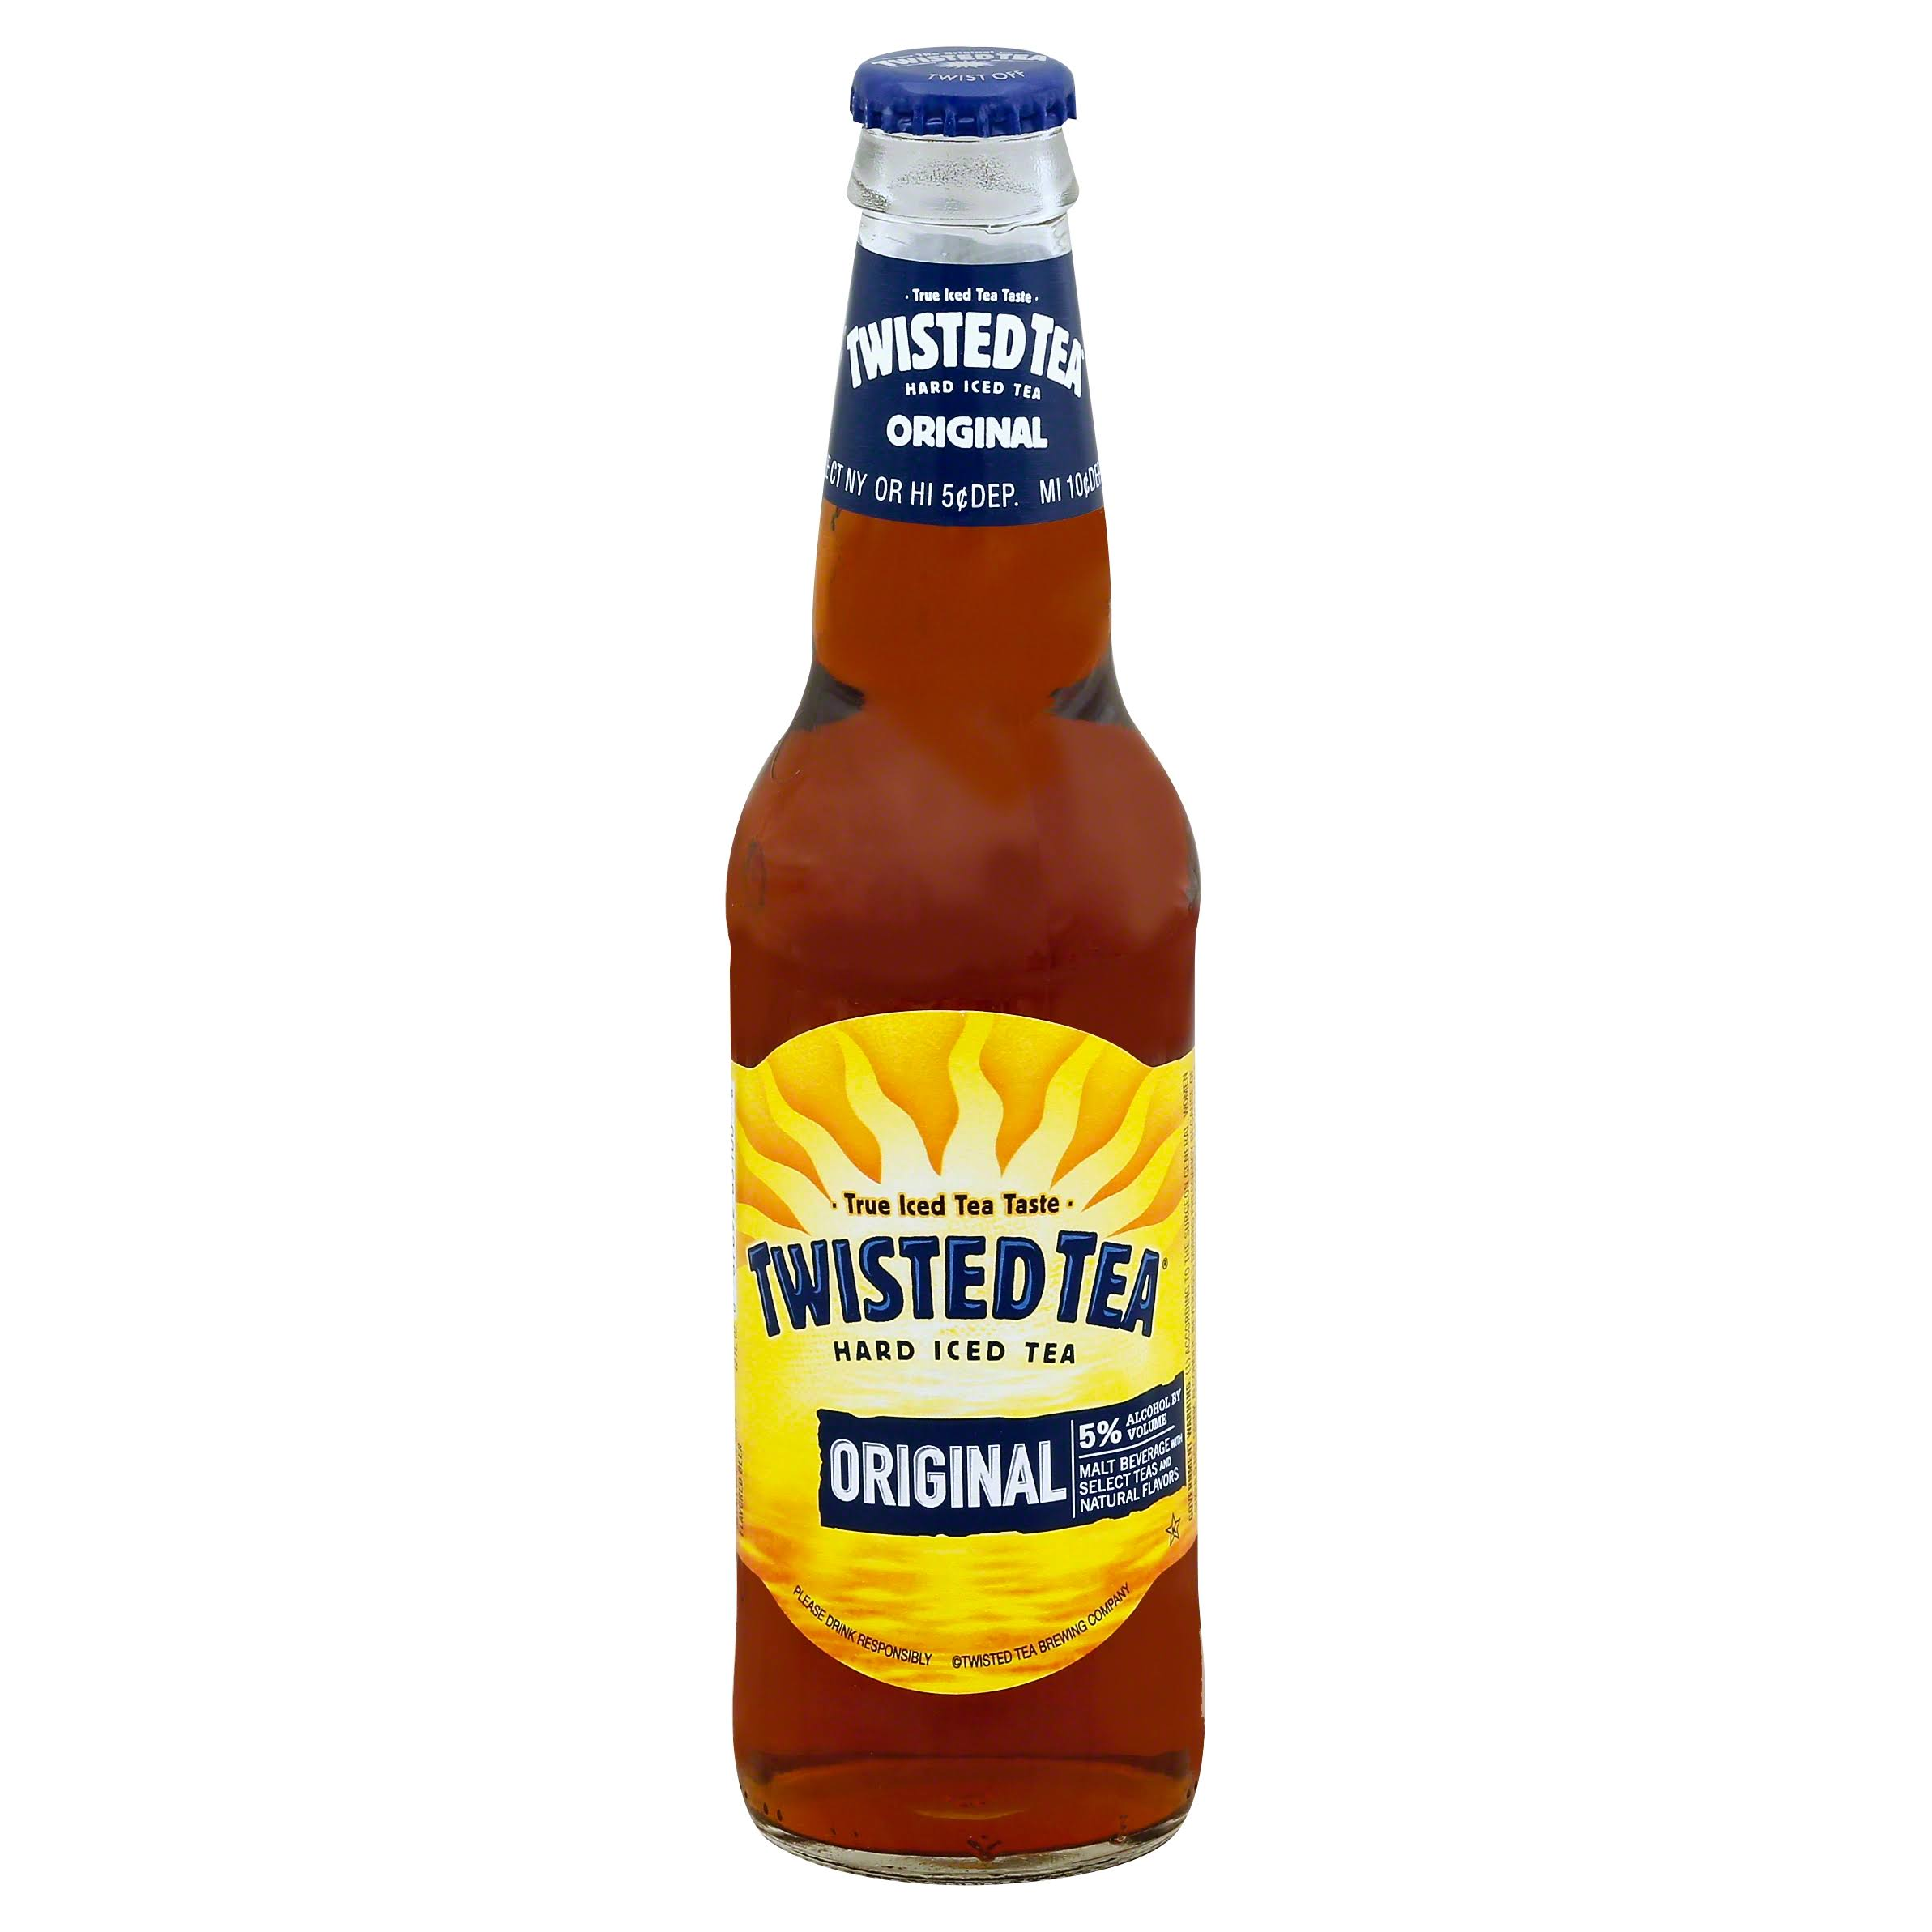 Twisted Tea Hard Iced Tea, Original - 12 fl oz